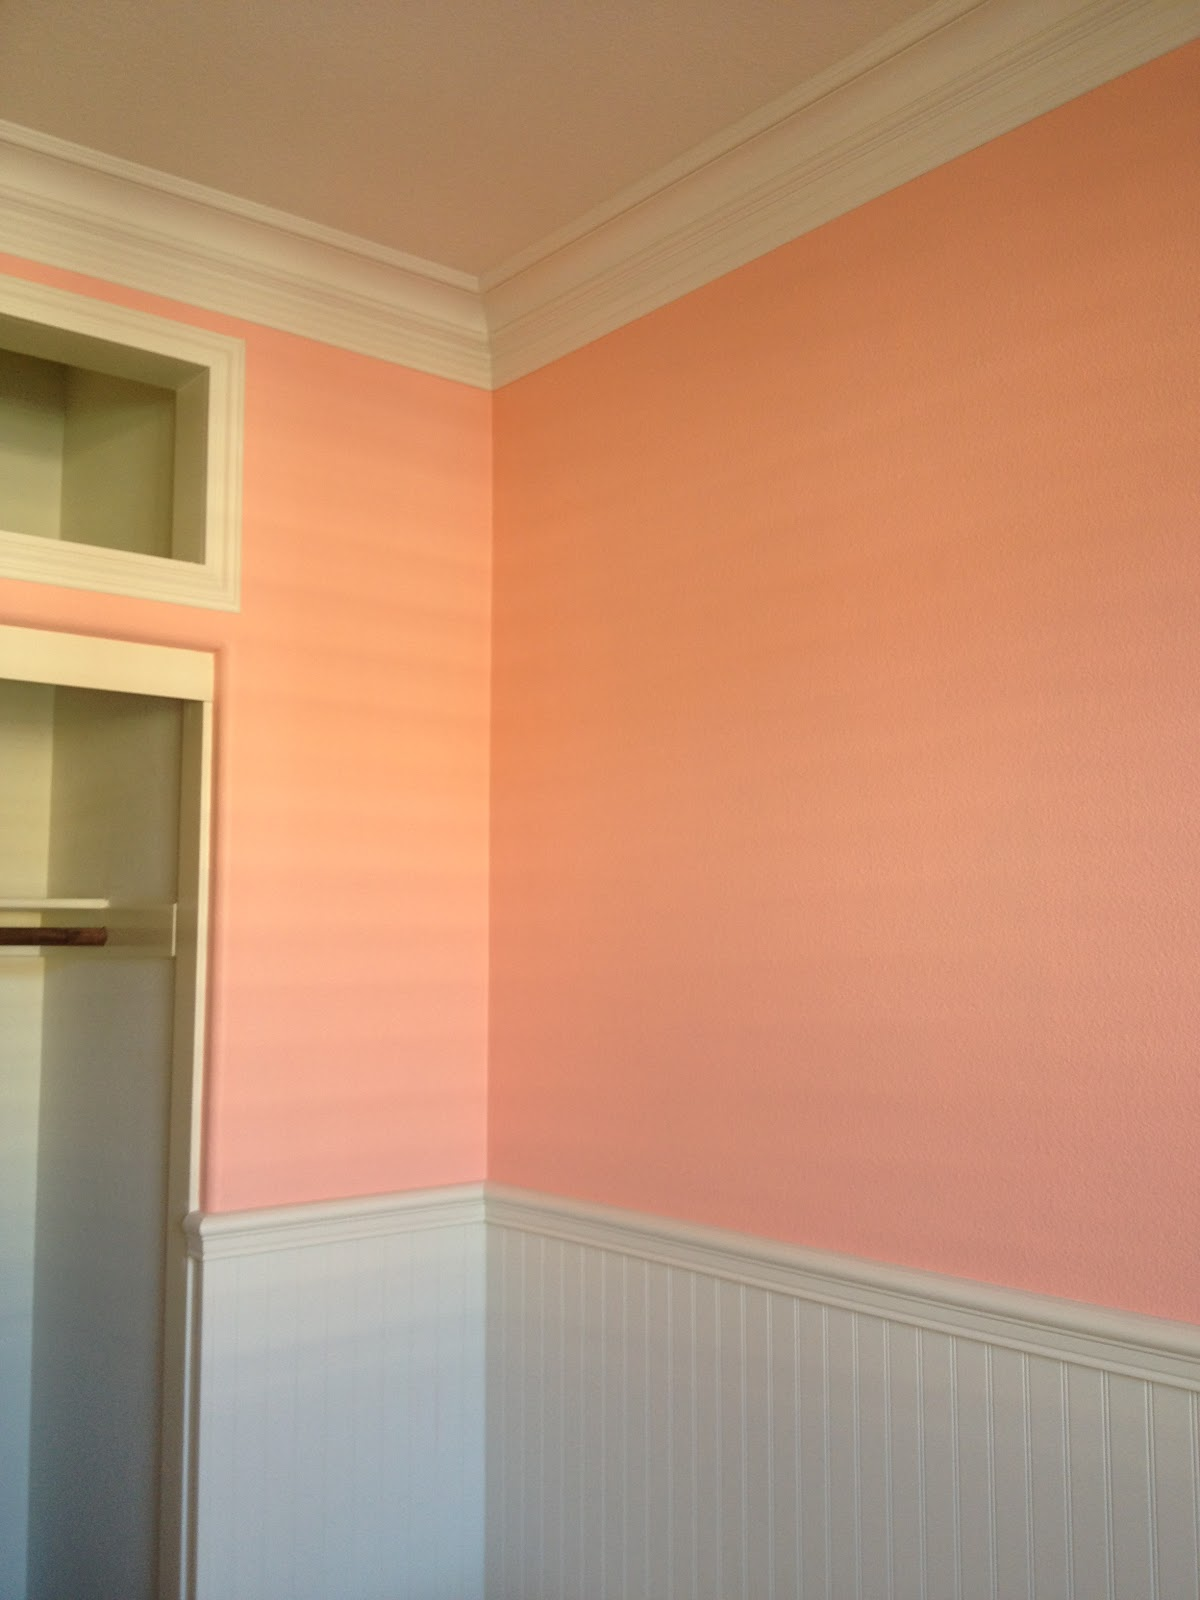 Light peach color paint viewing gallery - How to make peach color paint ...